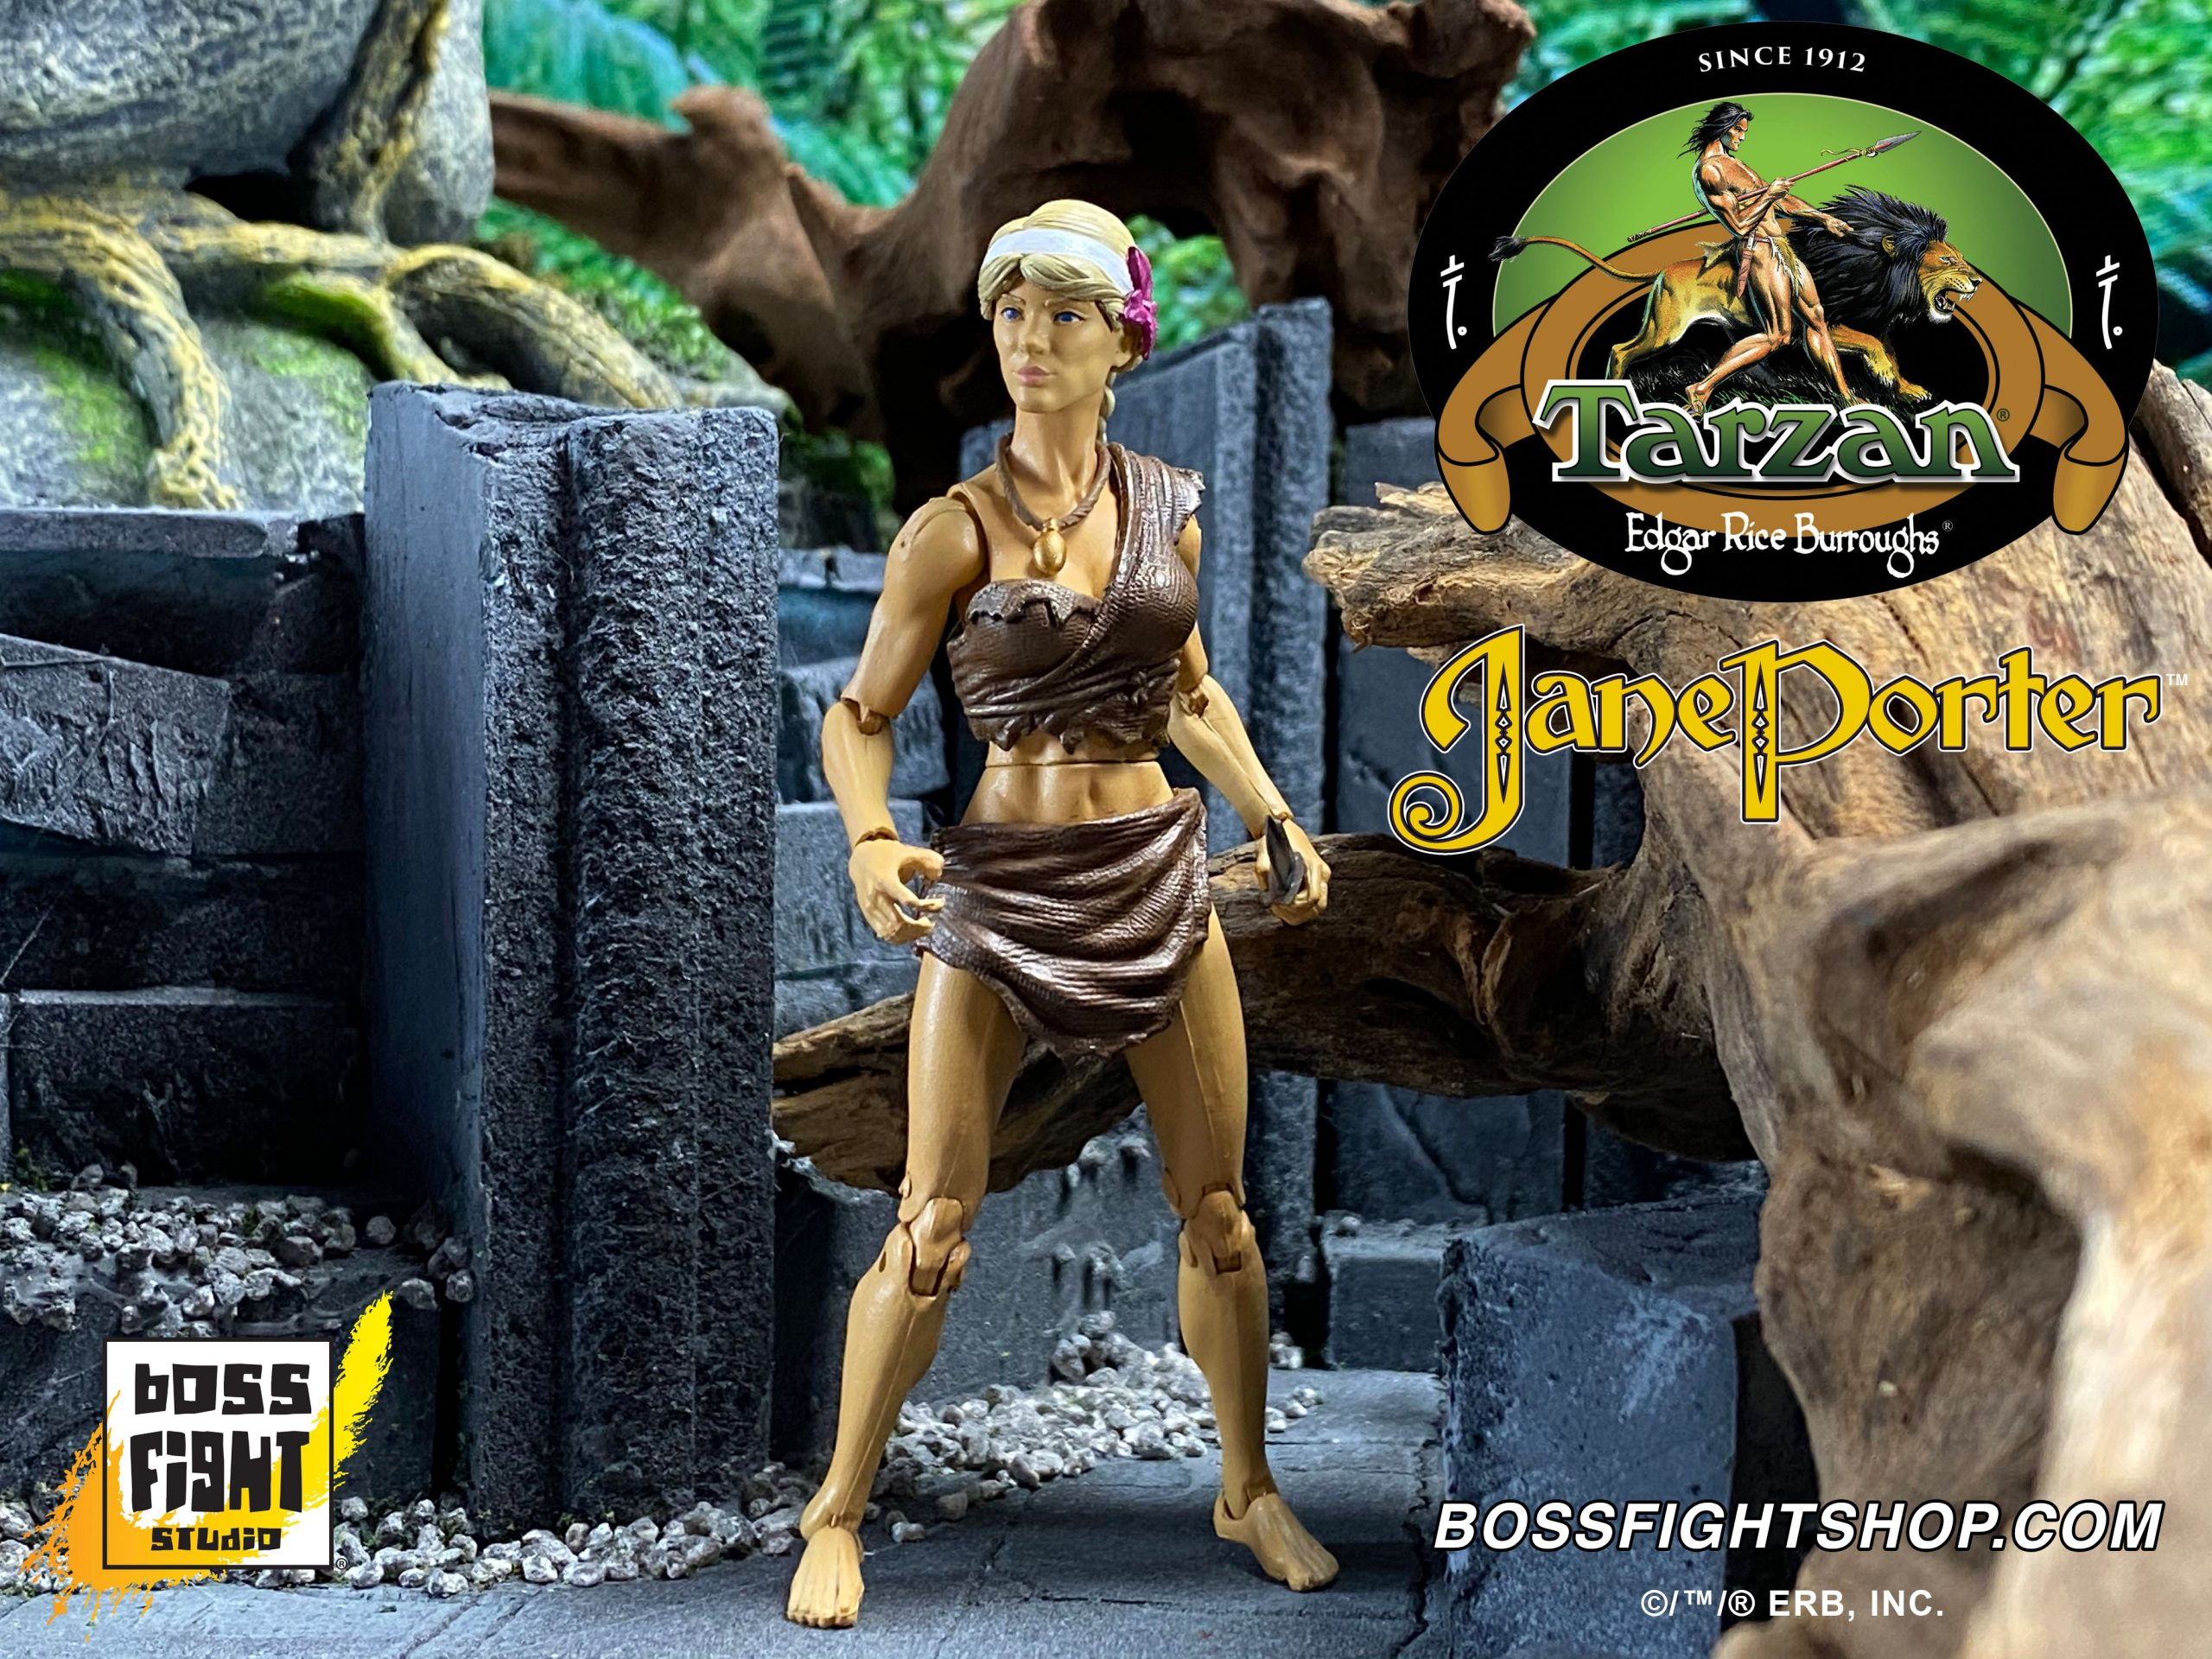 Jane from the action figure series by Boss Fight Studio